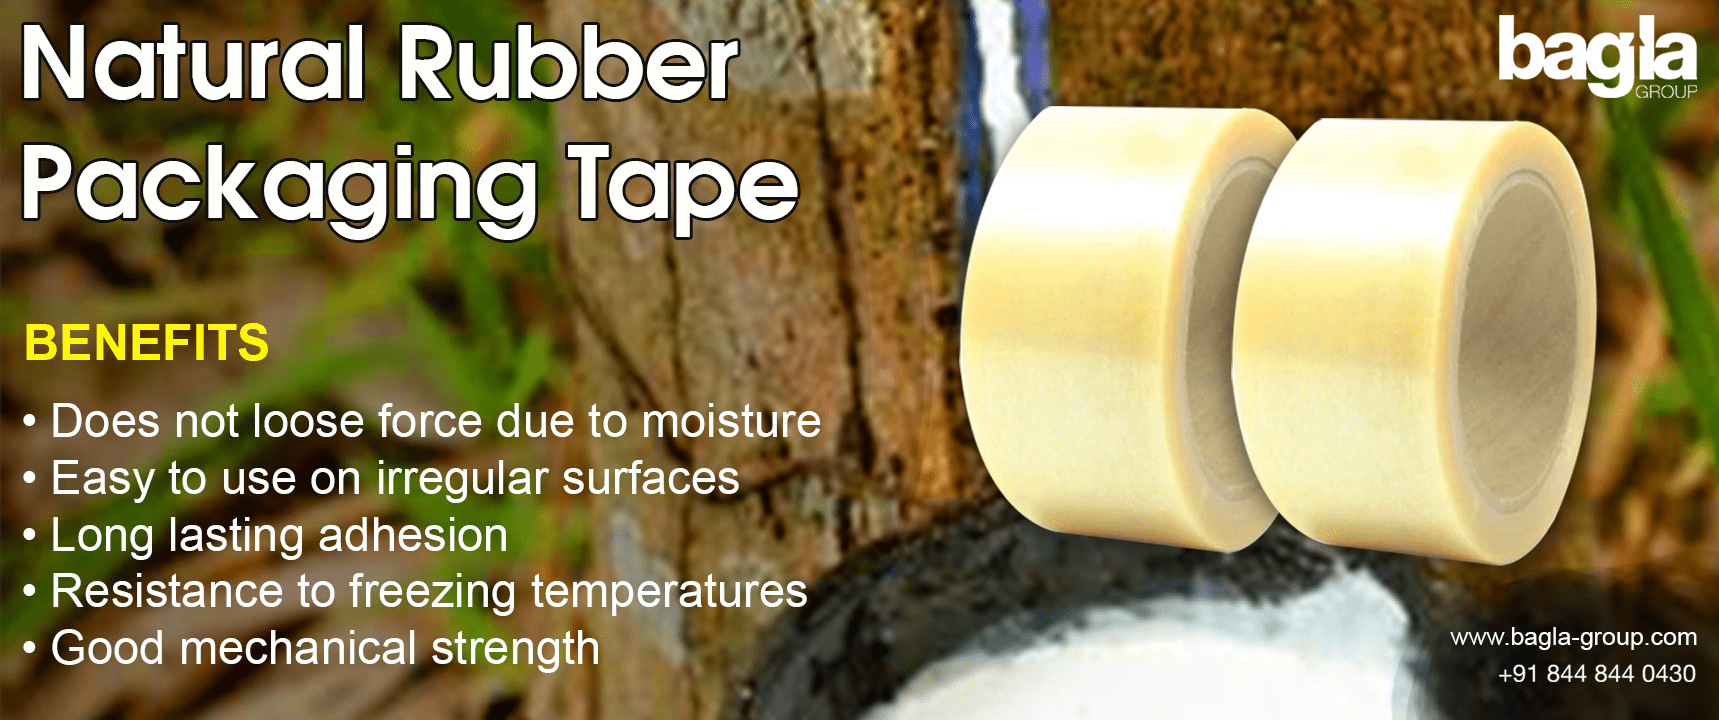 Natural-Rubber-Packaging-web-banner